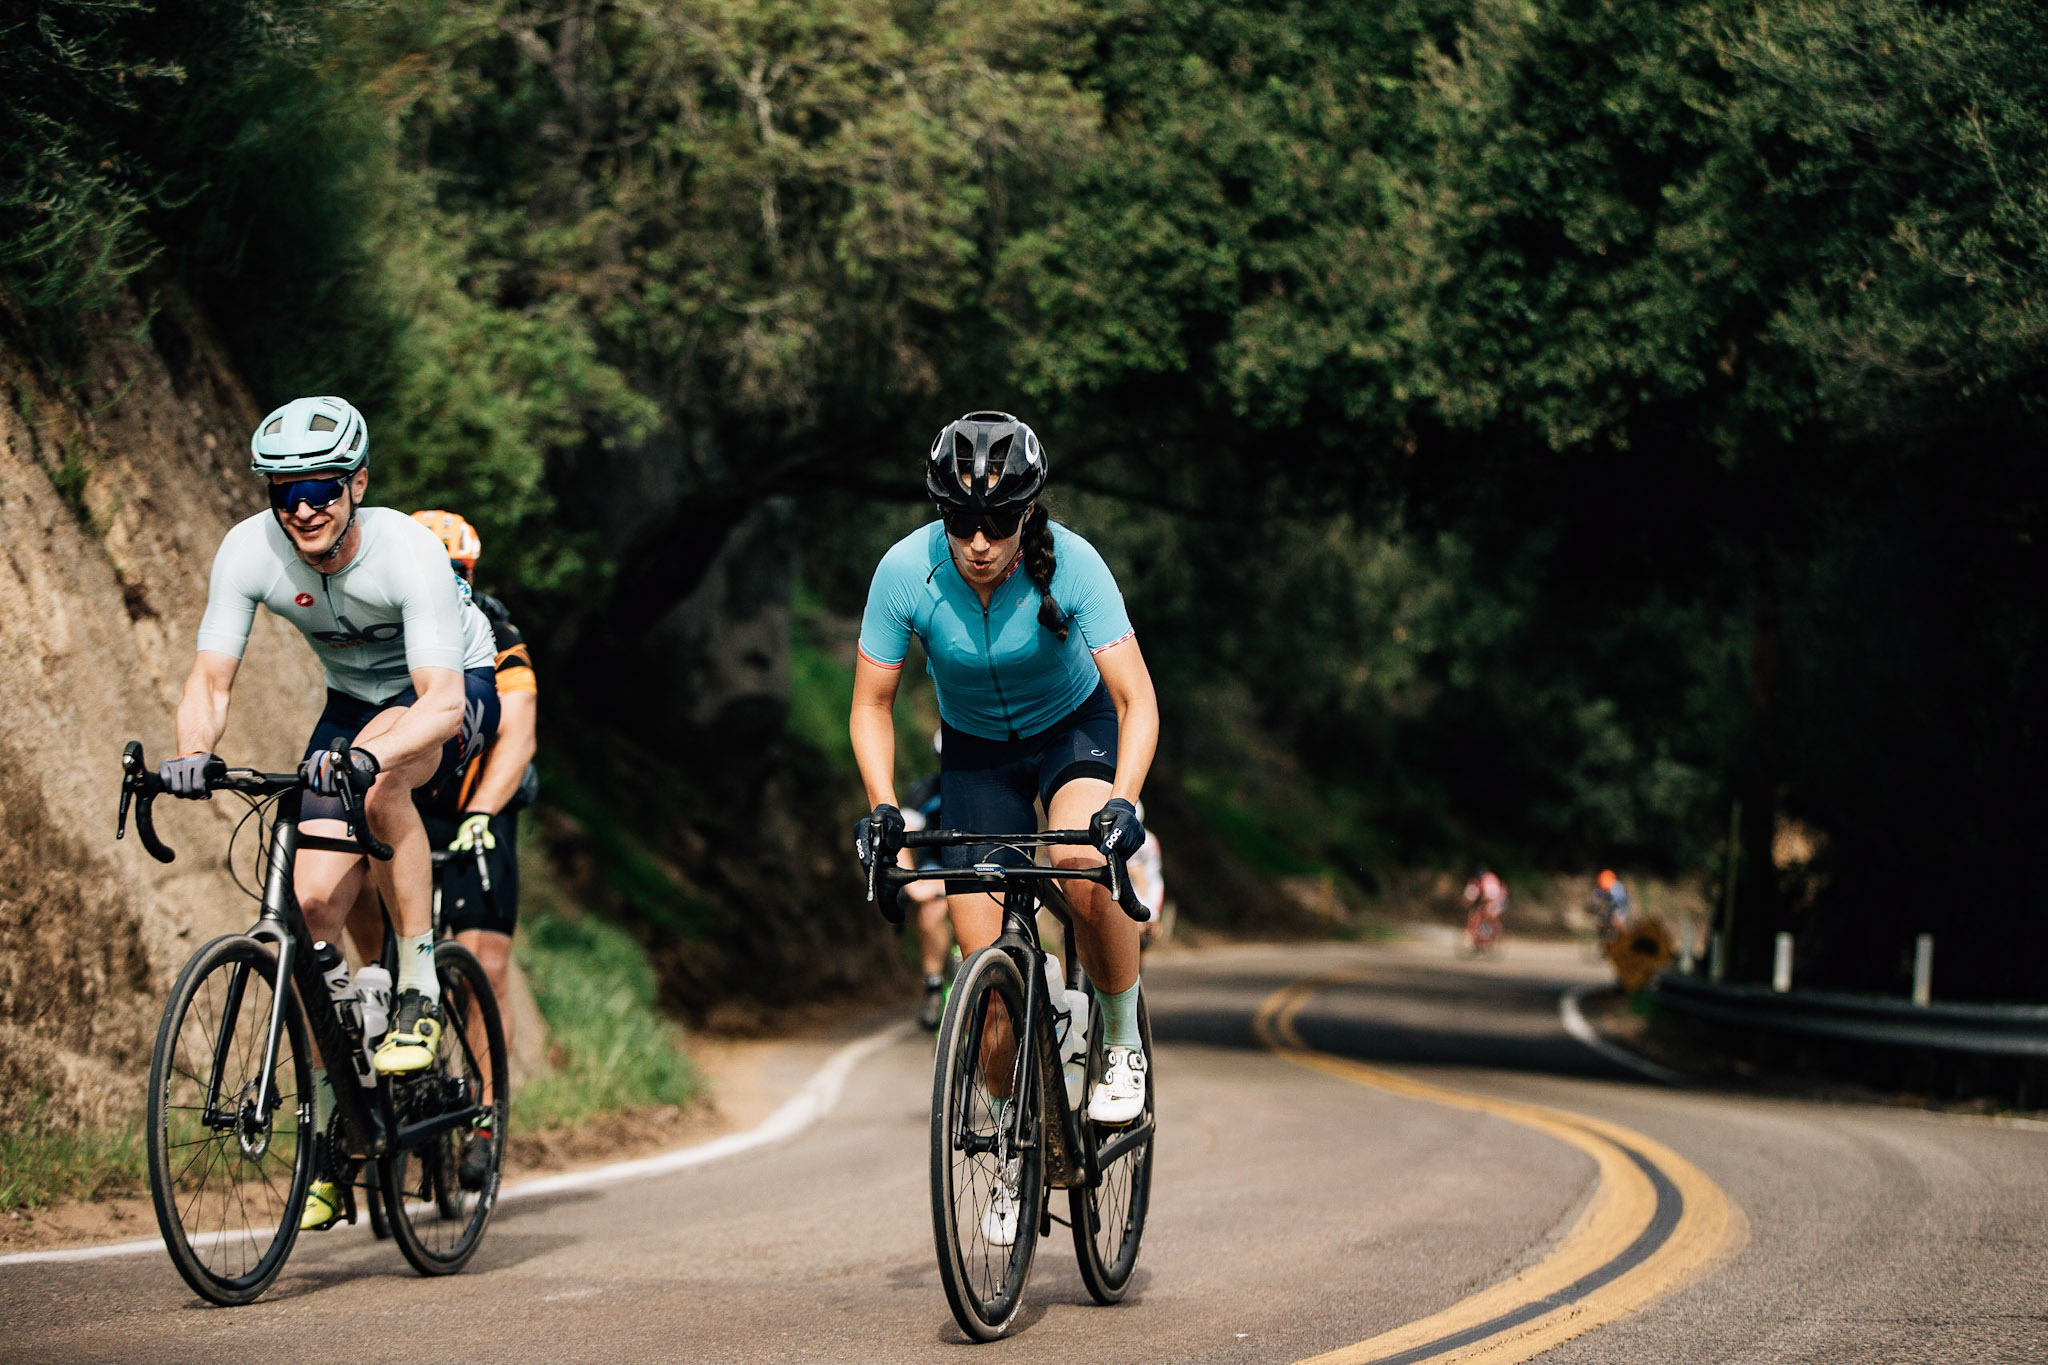 Jake Mclaughlin and Katie Araujo, both riding Canyons, are 2 of our stronger North County cyclists.